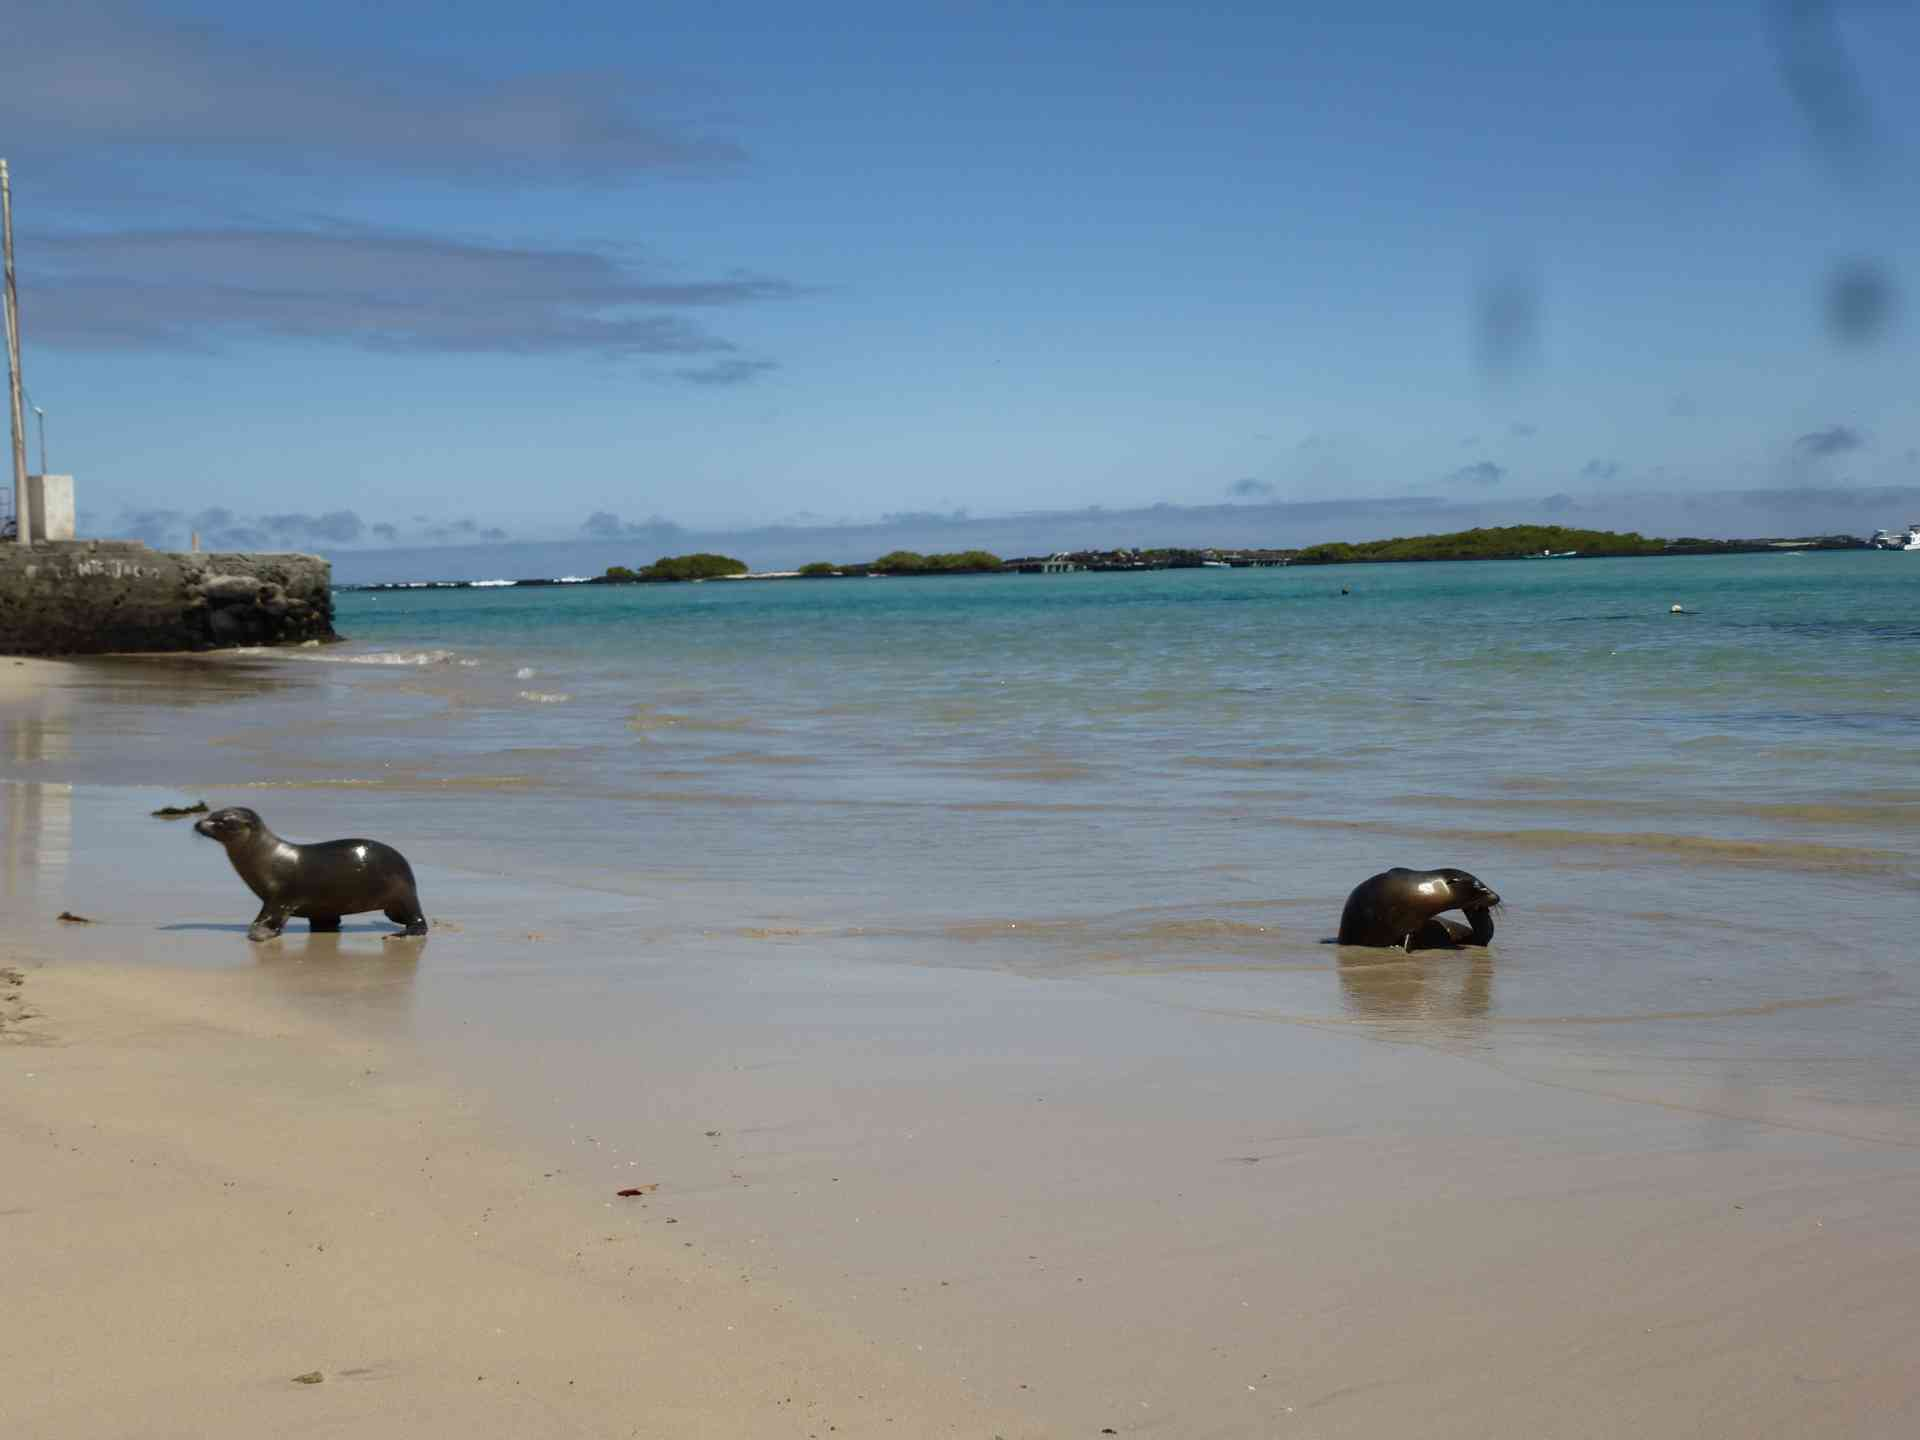 Sea lions in the Galapagos Islands by Marion Bunnik